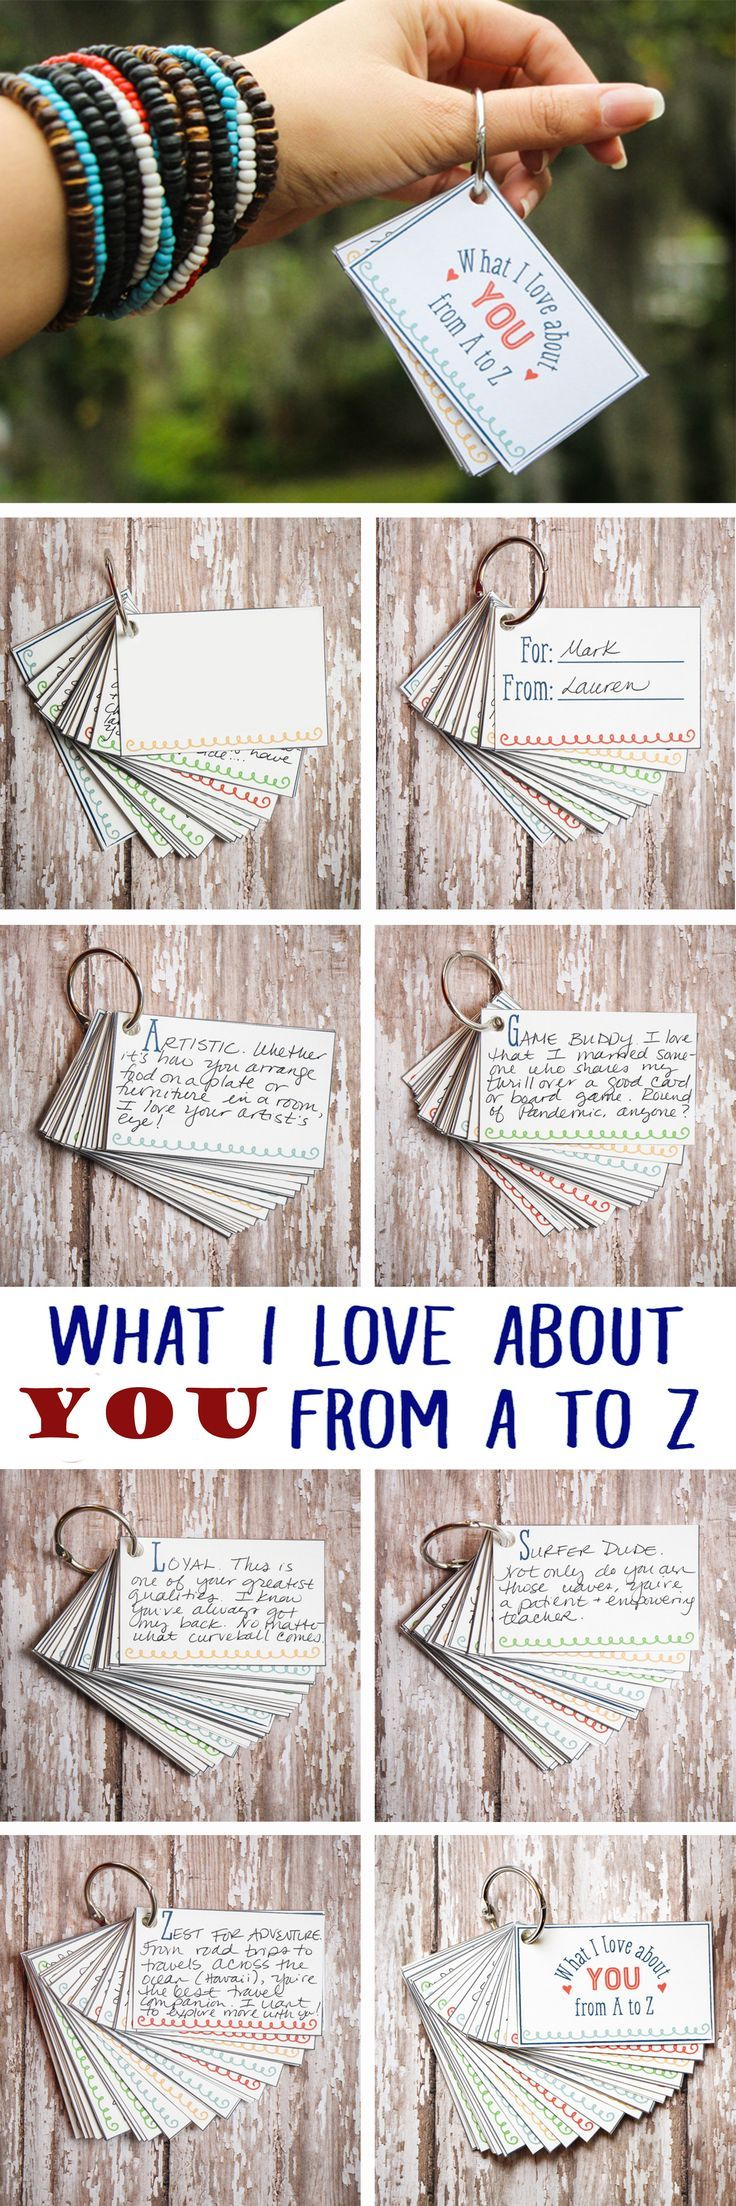 I Love About You from A to Z Mini-Book